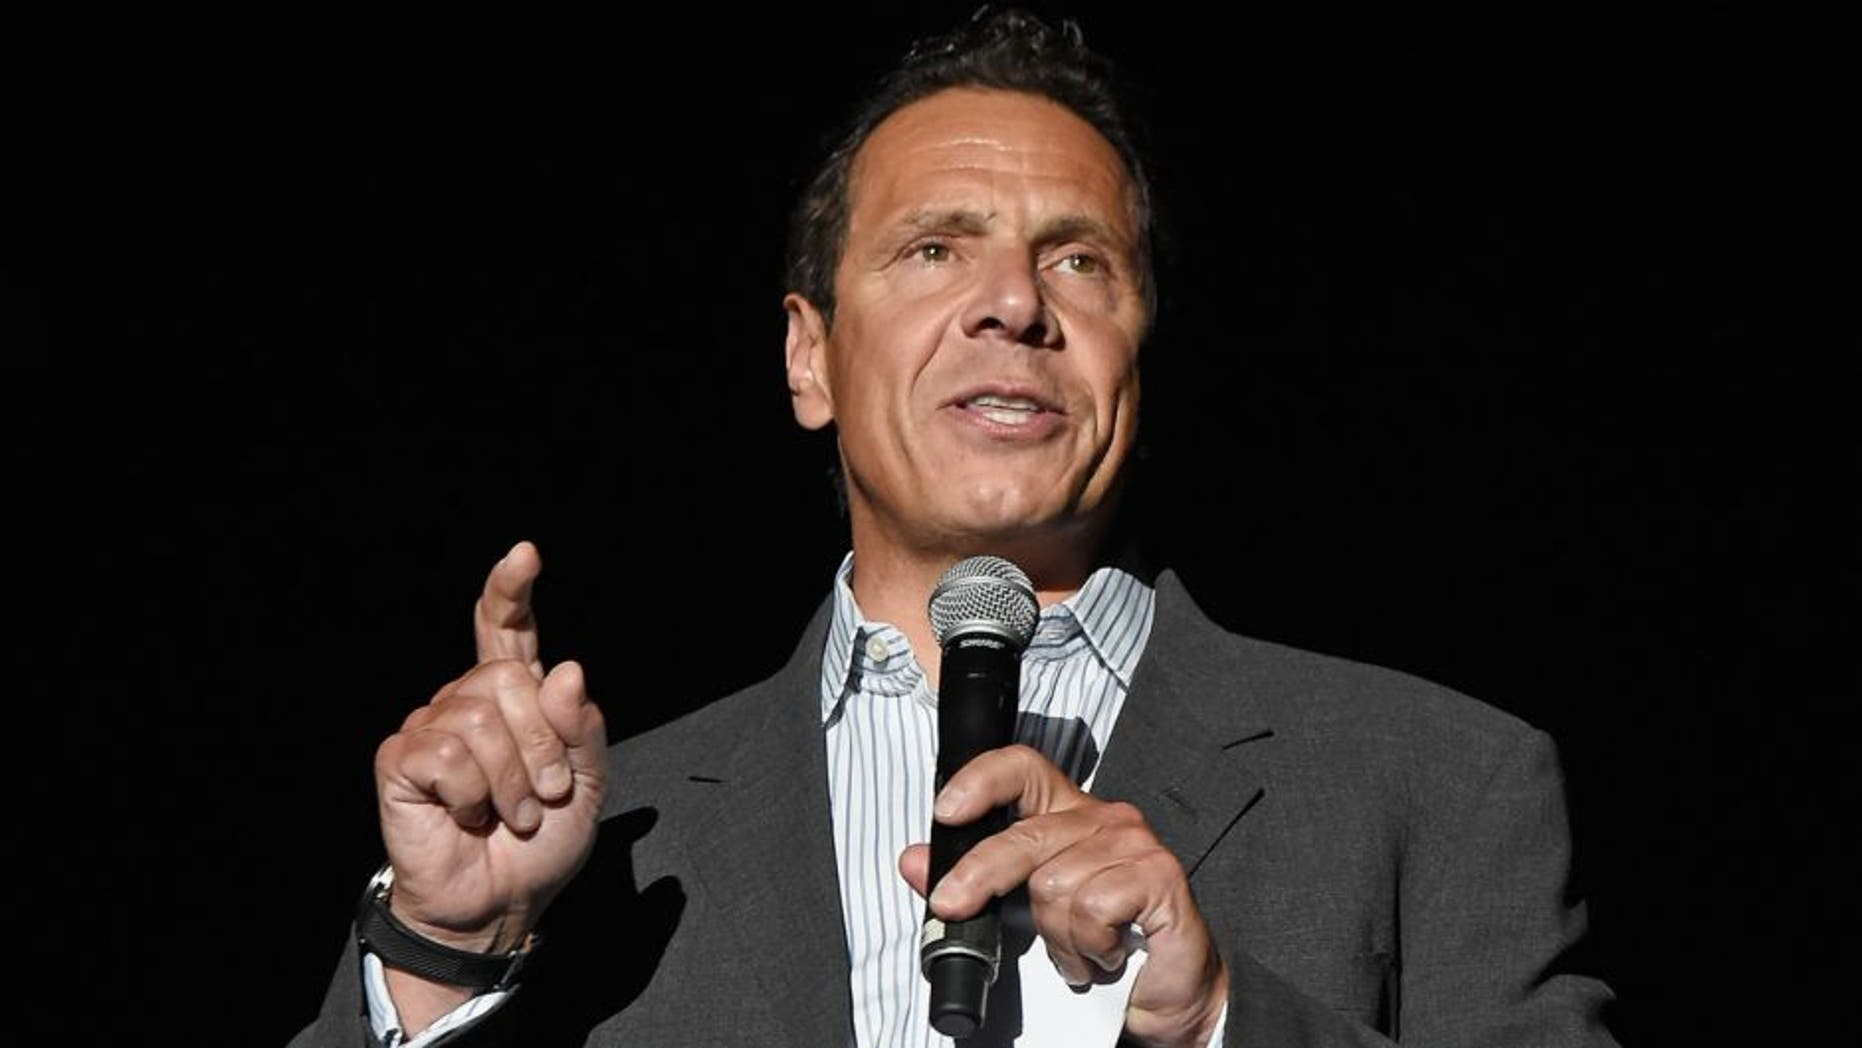 NEW YORK, NY - AUGUST 04: Governor of New York Andrew Cuomo speaks onstage before Billy Joel performs the final show at Nassau Coliseum on August 4, 2015 in Long Island, New York. (Photo by Kevin Mazur/WireImage)